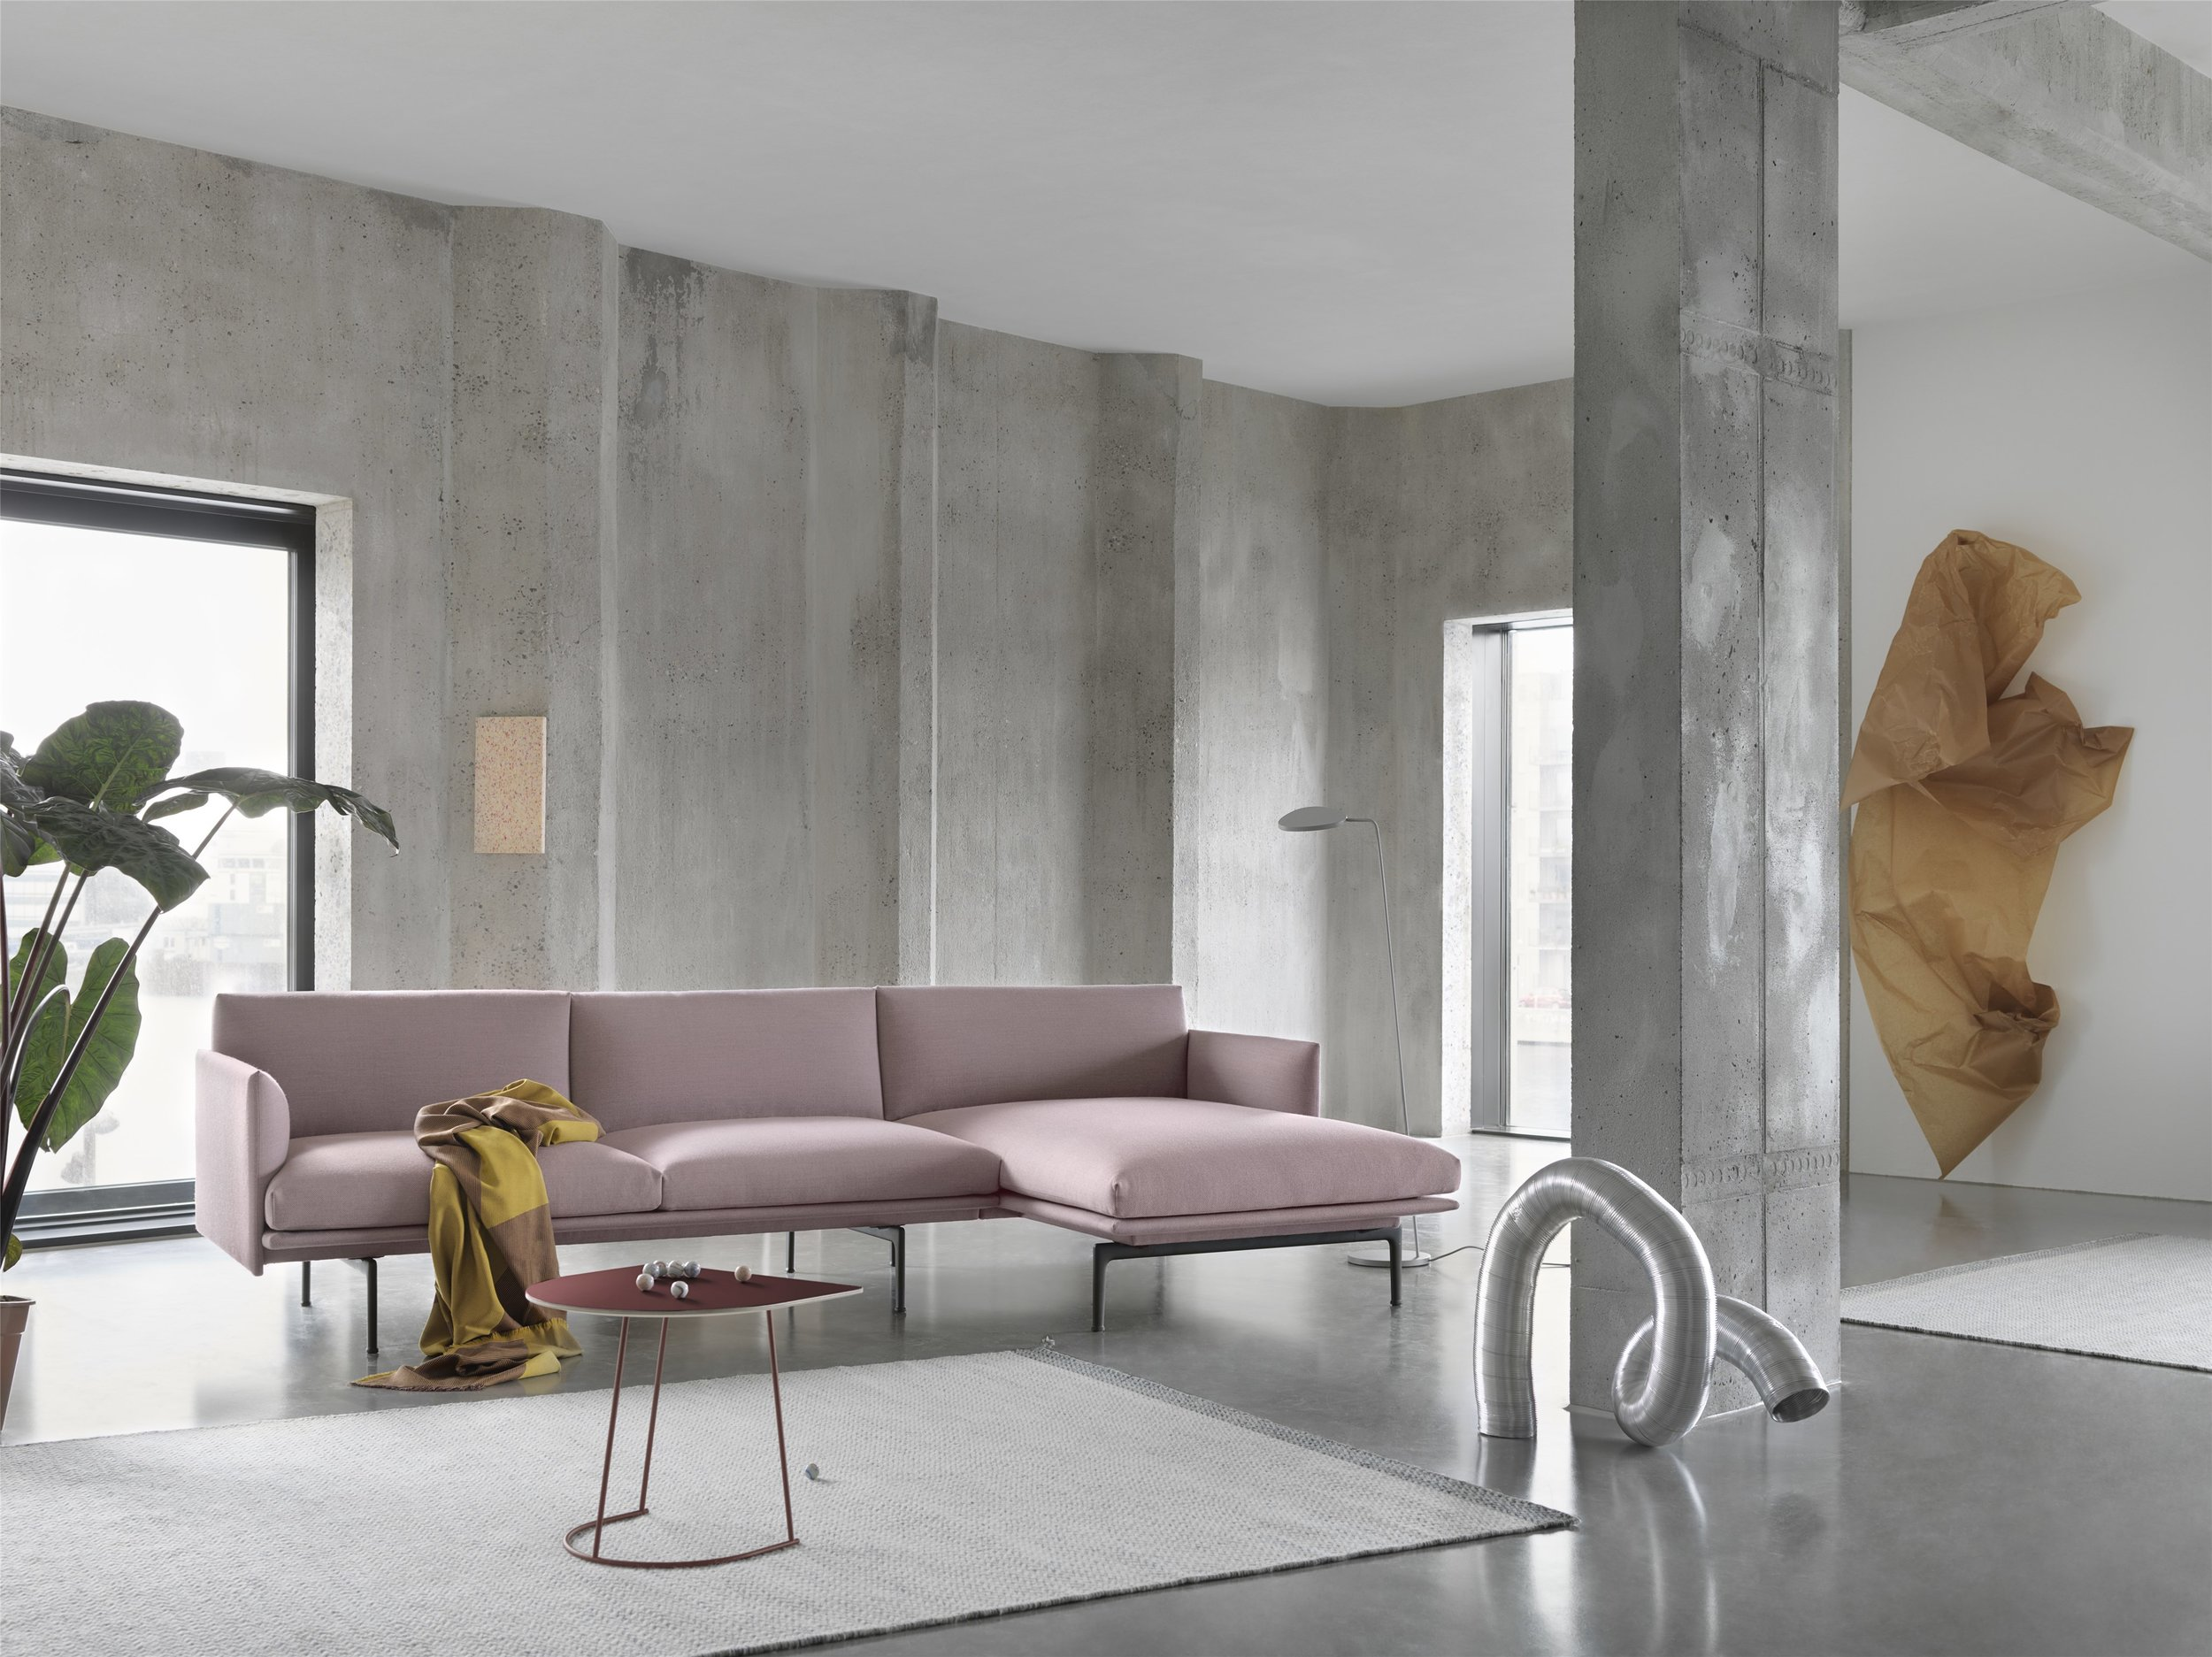 Outline-Chaise-longue-Fiord-551-Airy-plum-Ply-Sway-Leaf-Floor-Lamp-org_(150).jpg